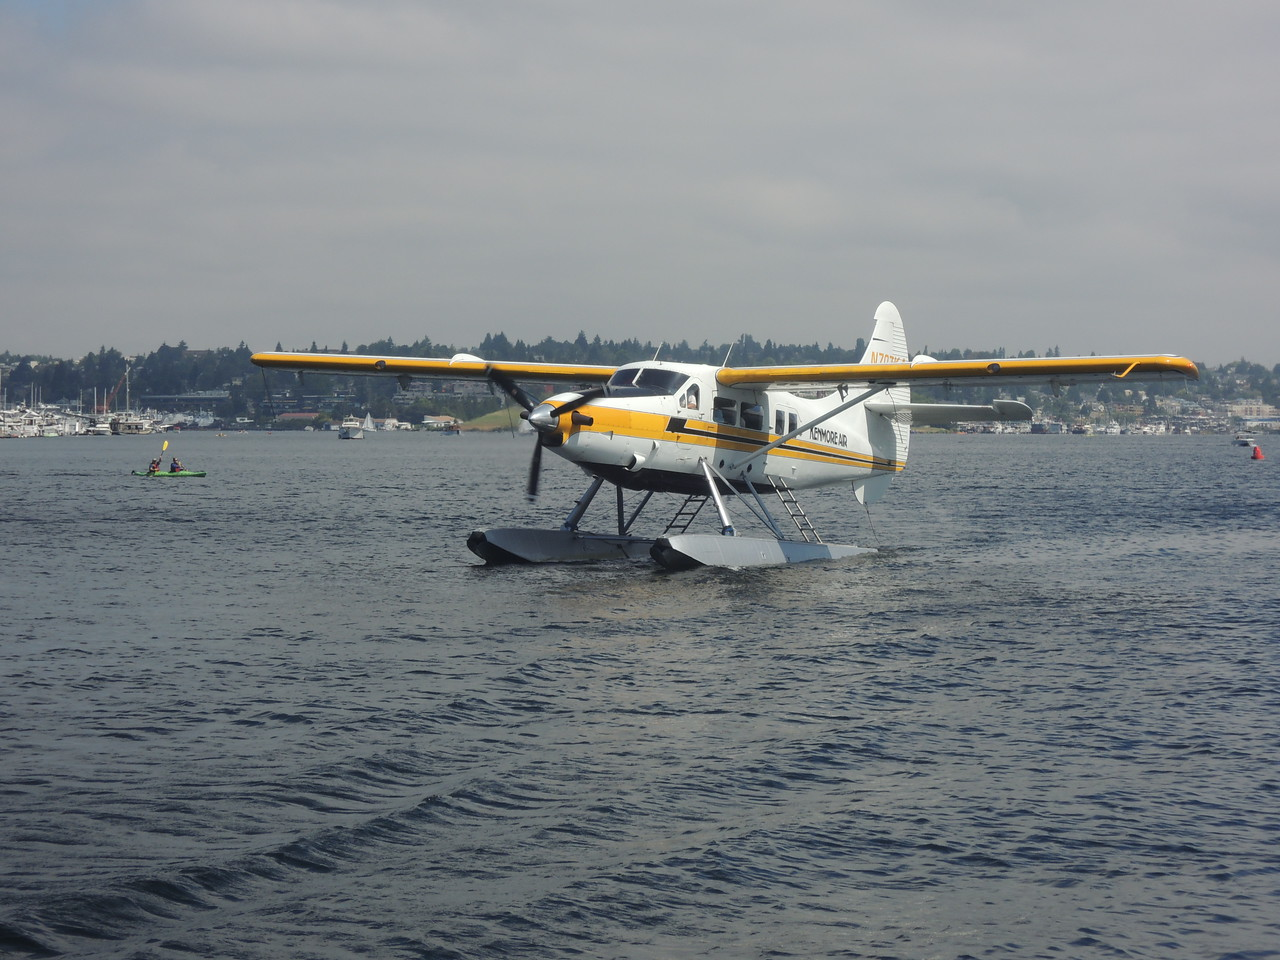 Time on Lake Union is very incomplete without some seaplanes going by.  As this one passed the dock I was standing on, the young boy and his dad at the end of the dock waved and the pilots and every passenger waved back!